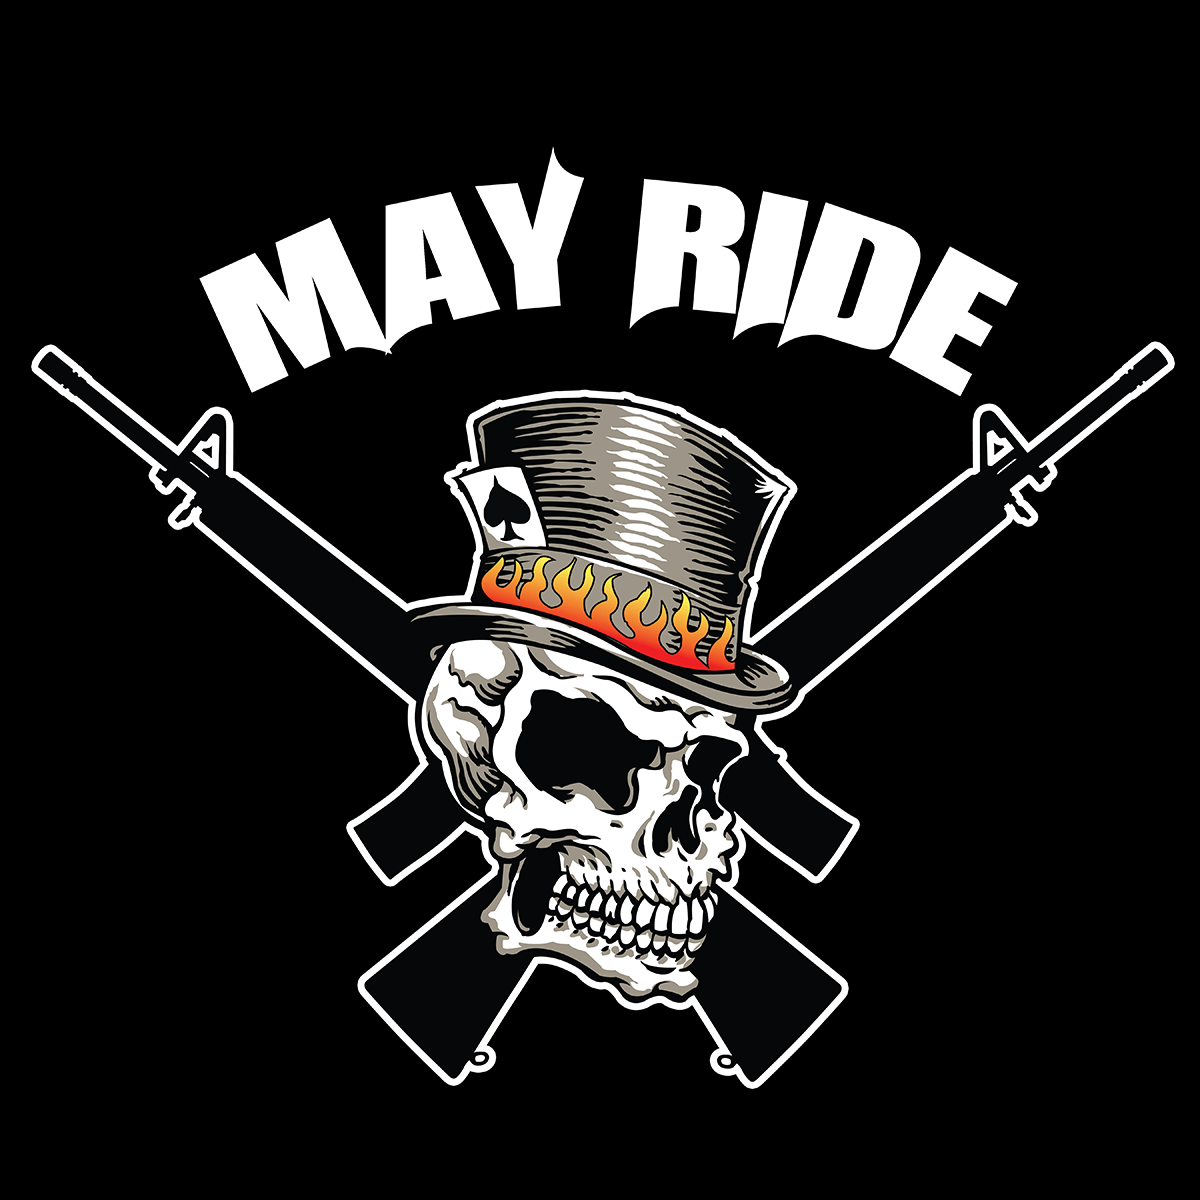 20th Annual May Ride 2022 (SAVE THE DATE)!!!